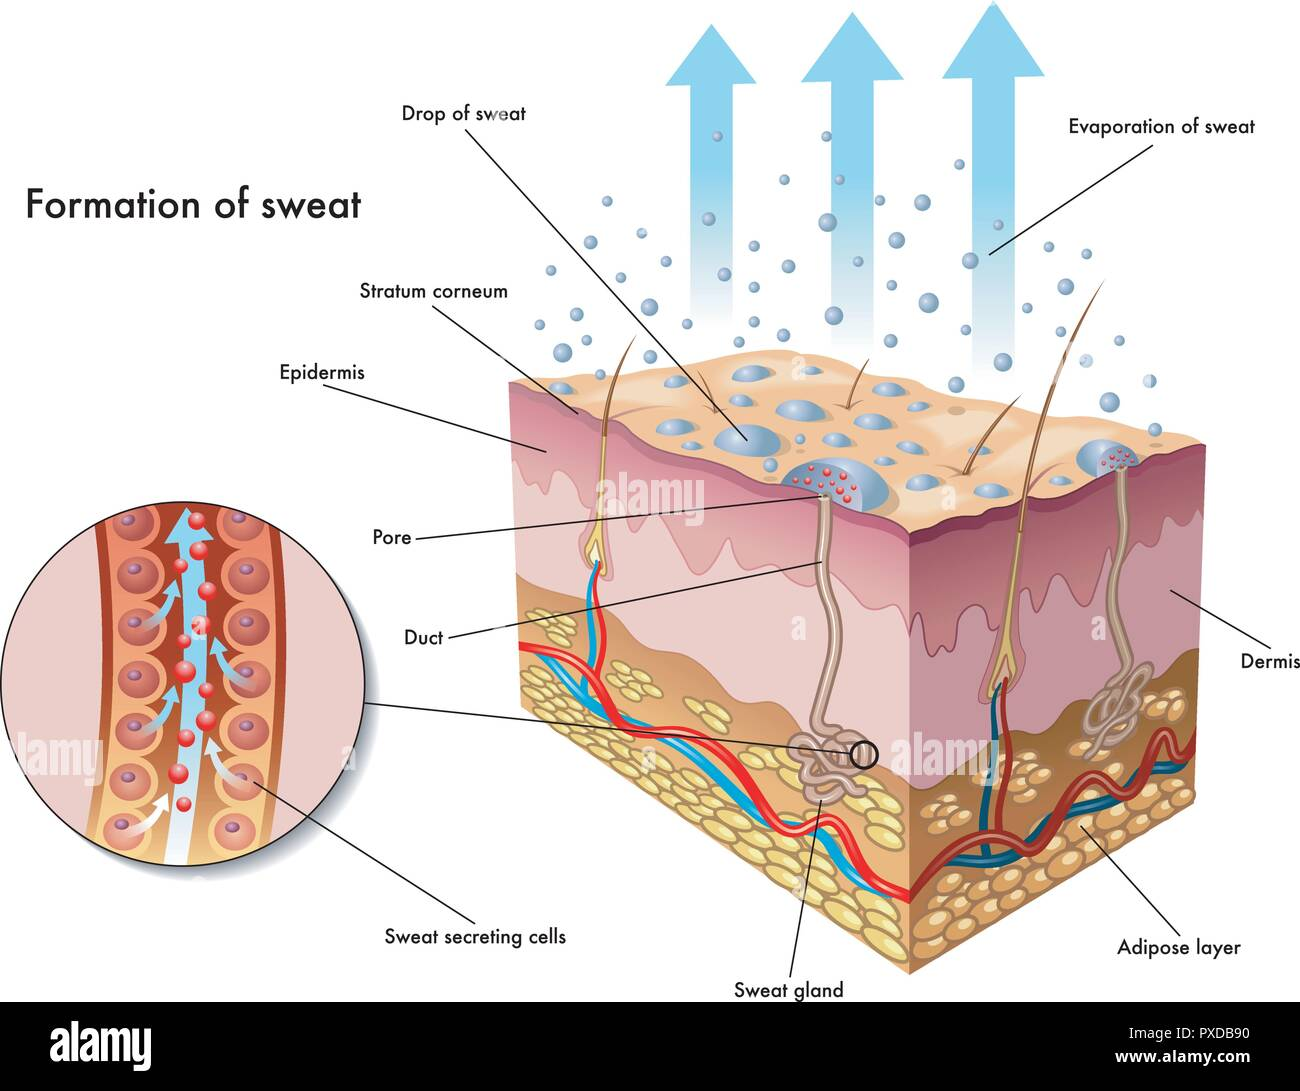 medical illustration of the formation of sweat - Stock Vector